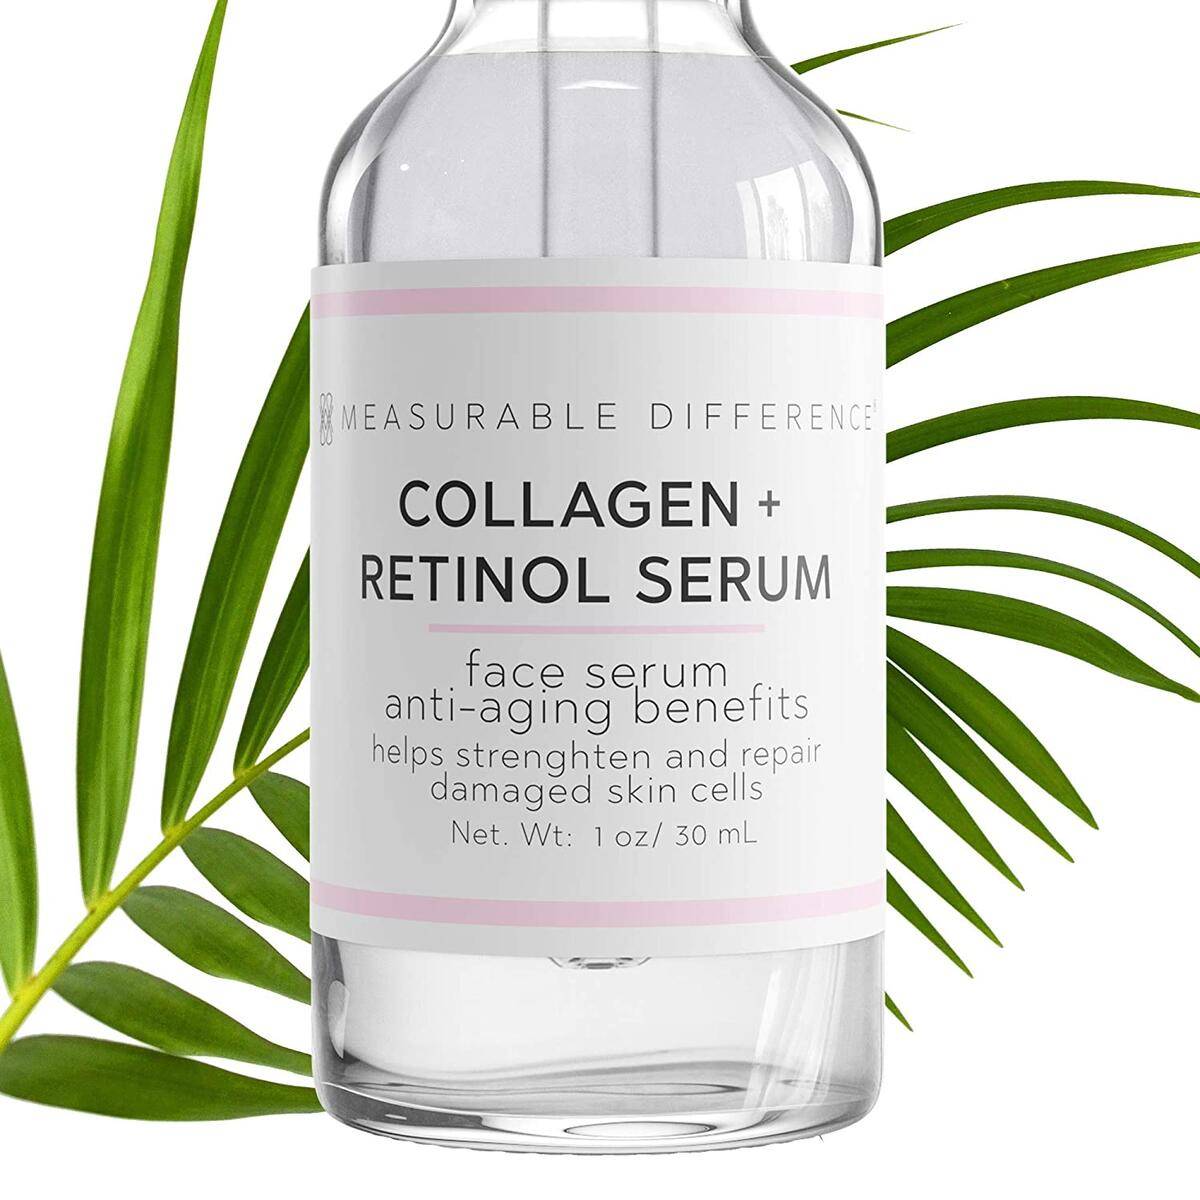 Measurable Difference Collagen Retinol Serum, Anti-Aging Facial Serum for Wrinkles, Fine Lines, Pure Anti-Wrinkle Face Serum In Pump Bottle for Restoring Skin Elasticity, Reducing Acne, 1 Oz